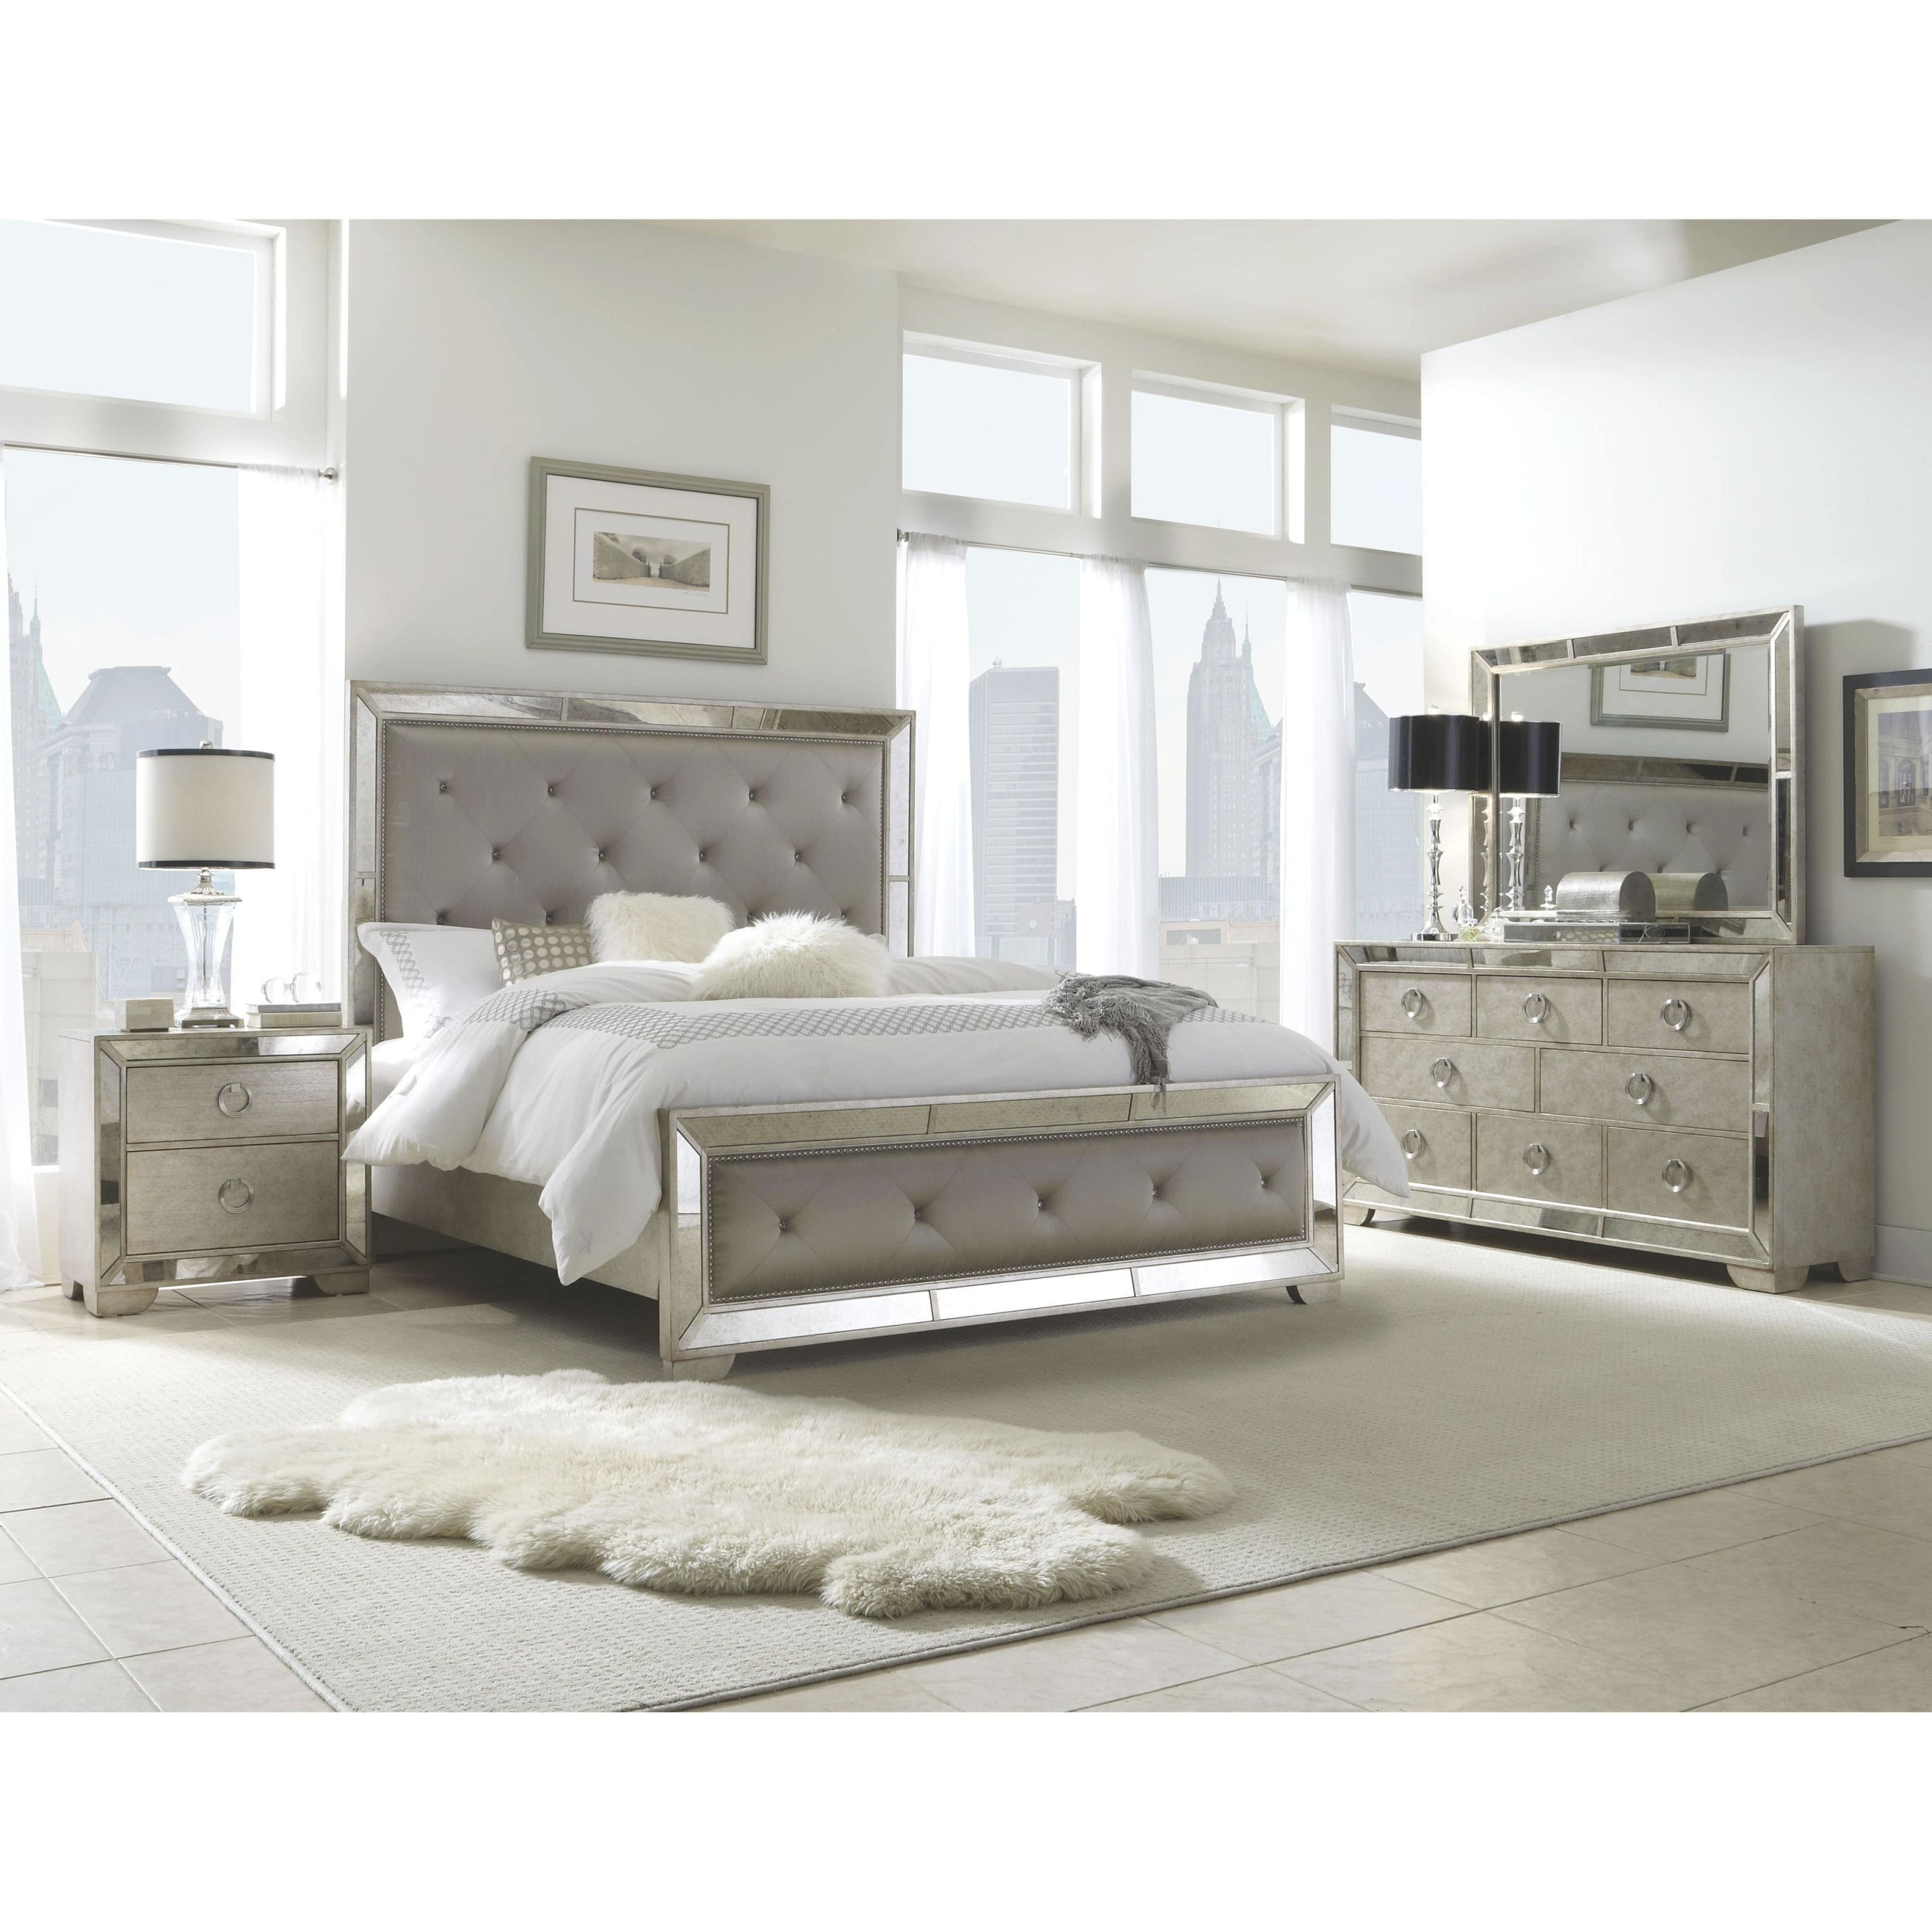 Celine 6-Piece Mirrored And Upholstered Tufted Queen-Size Bedroom Set for Bedroom Set Queen Size